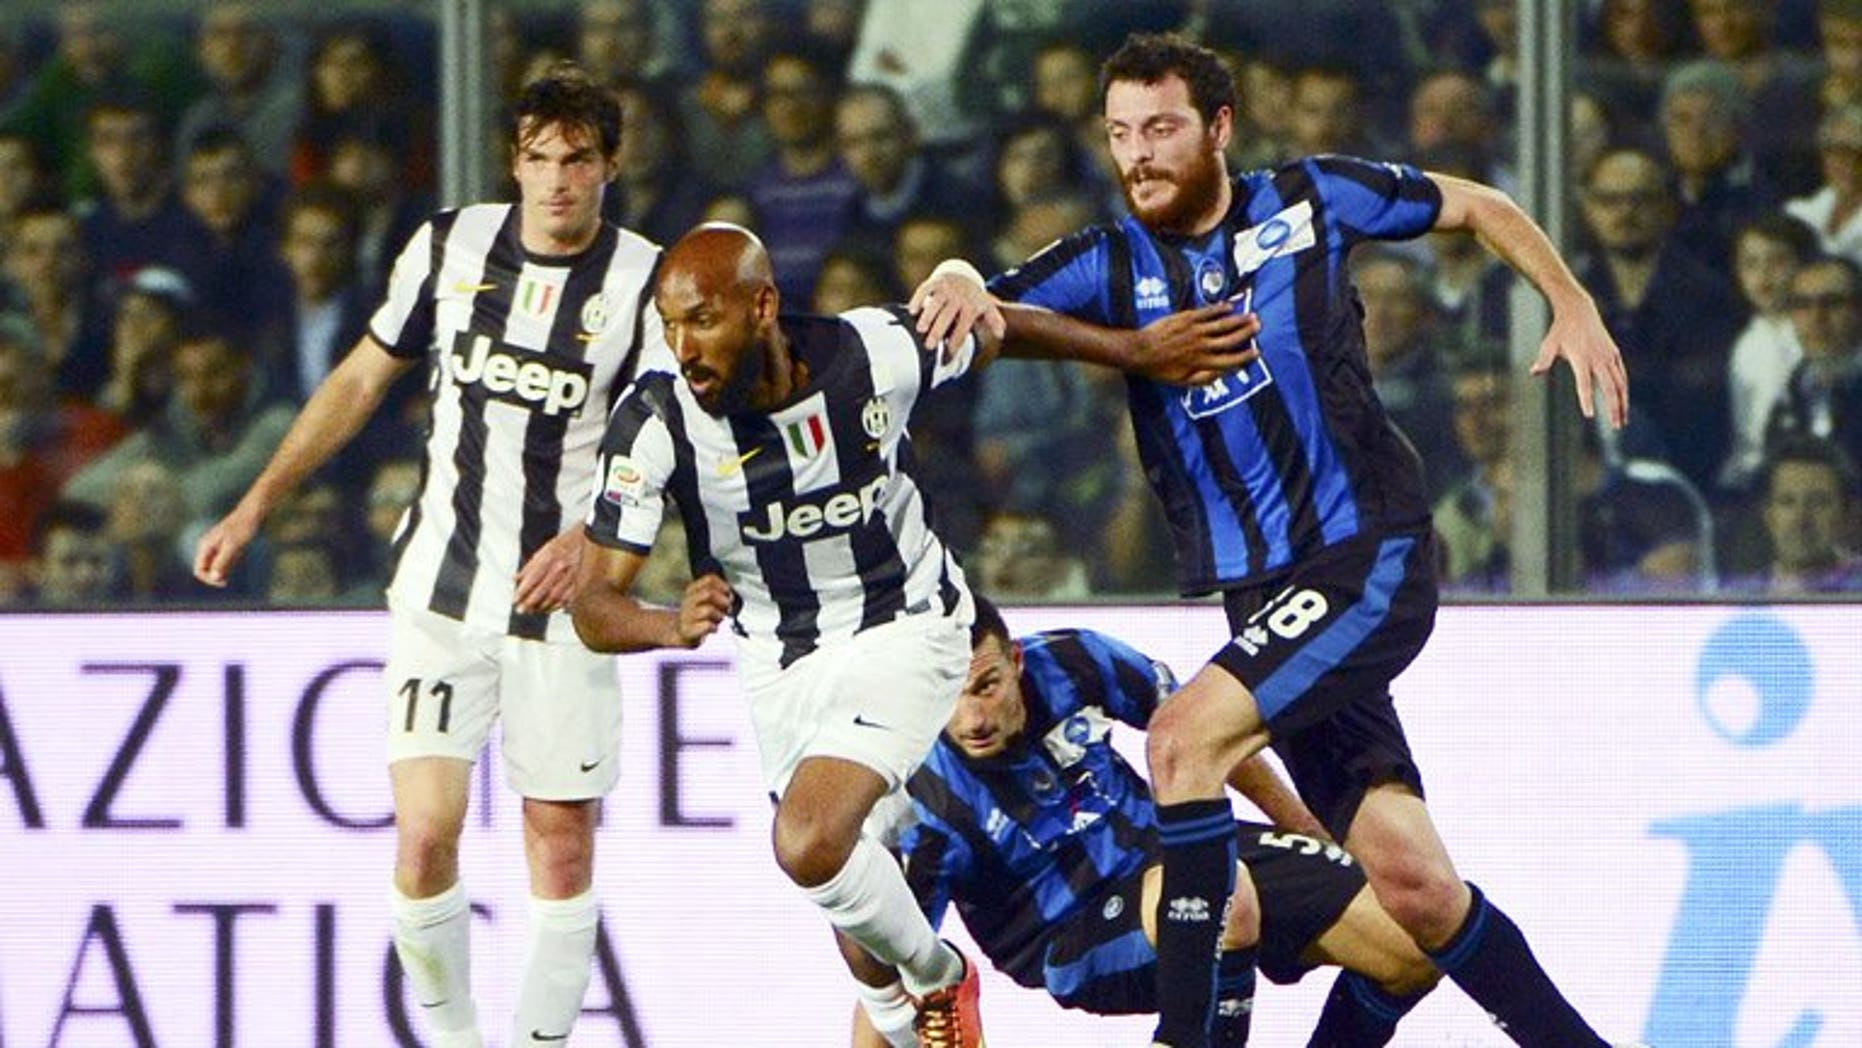 Nicolas Anelka (centre) on the ball for Juventus against Atalanta in Bergamo on May 8. Anelka is ready to end his nomadic career at West Bromwich Albion after joining the Premier League club on an initial one-year contract, the French striker said Friday.